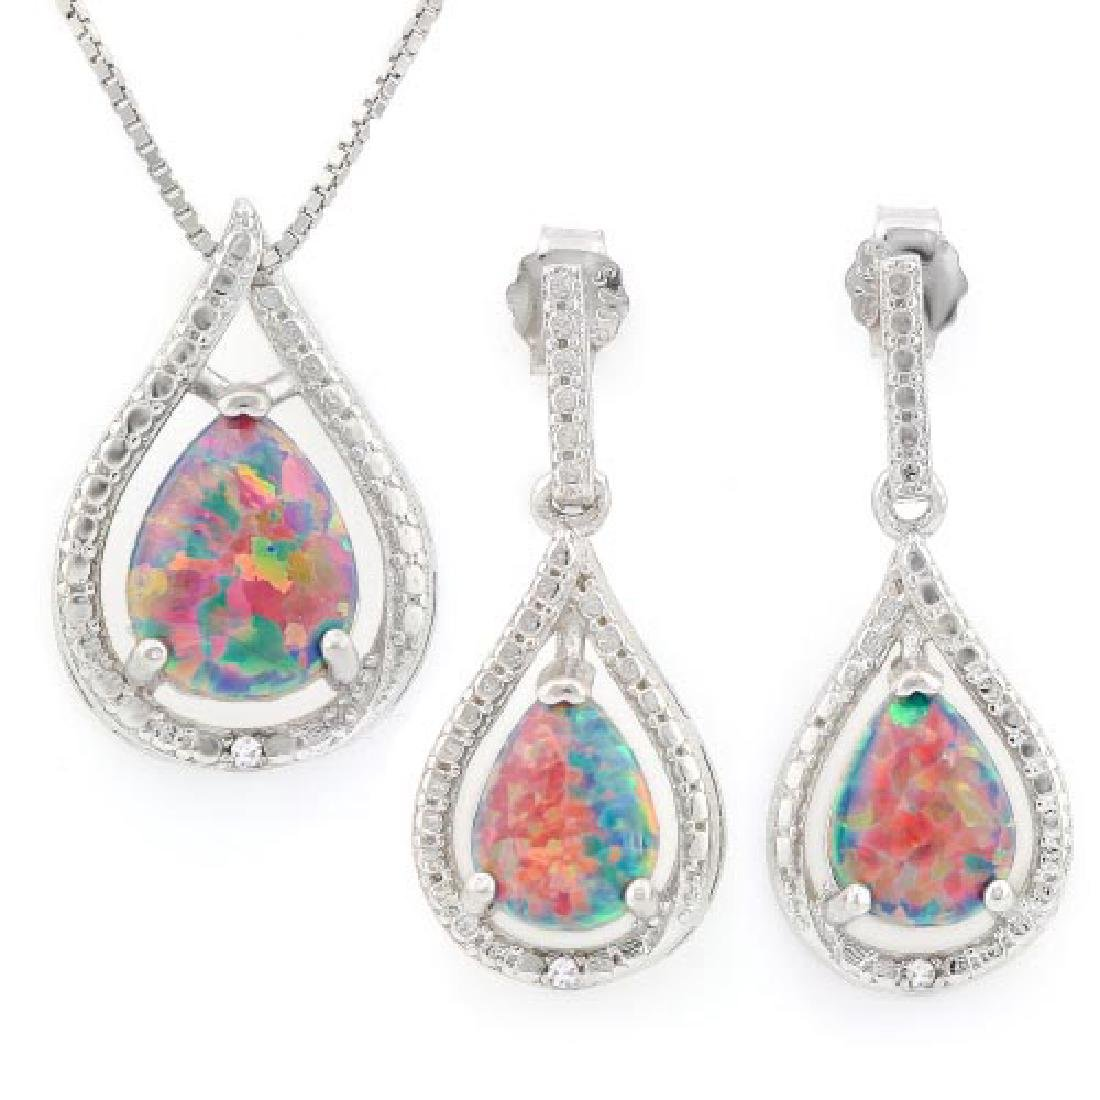 2 CARAT CREATED BLACK FIRE OPAL 925 STERLING SILVER SET